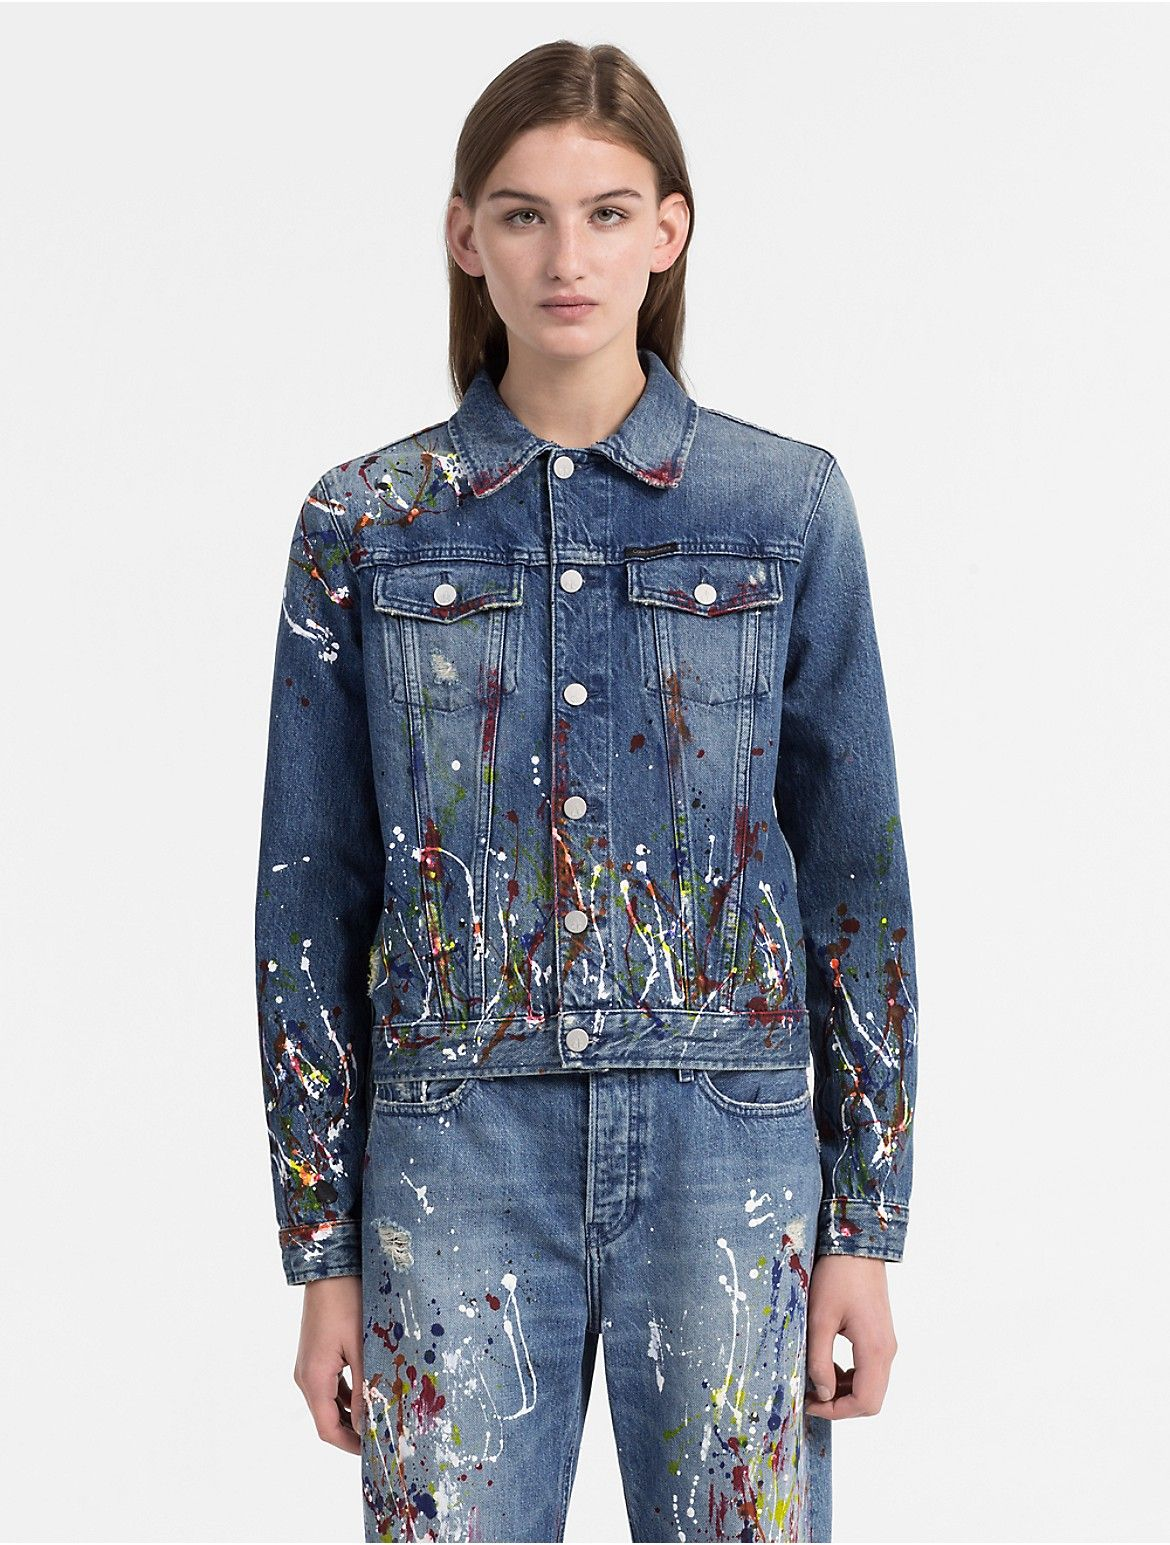 Crafted From Italian Rigid Denim These Straight Leg Jeans Feature A Vintage Wash And Splatte Designer Denim Jacket Paint Splatter Jeans Designer Outfits Woman [ 1545 x 1170 Pixel ]